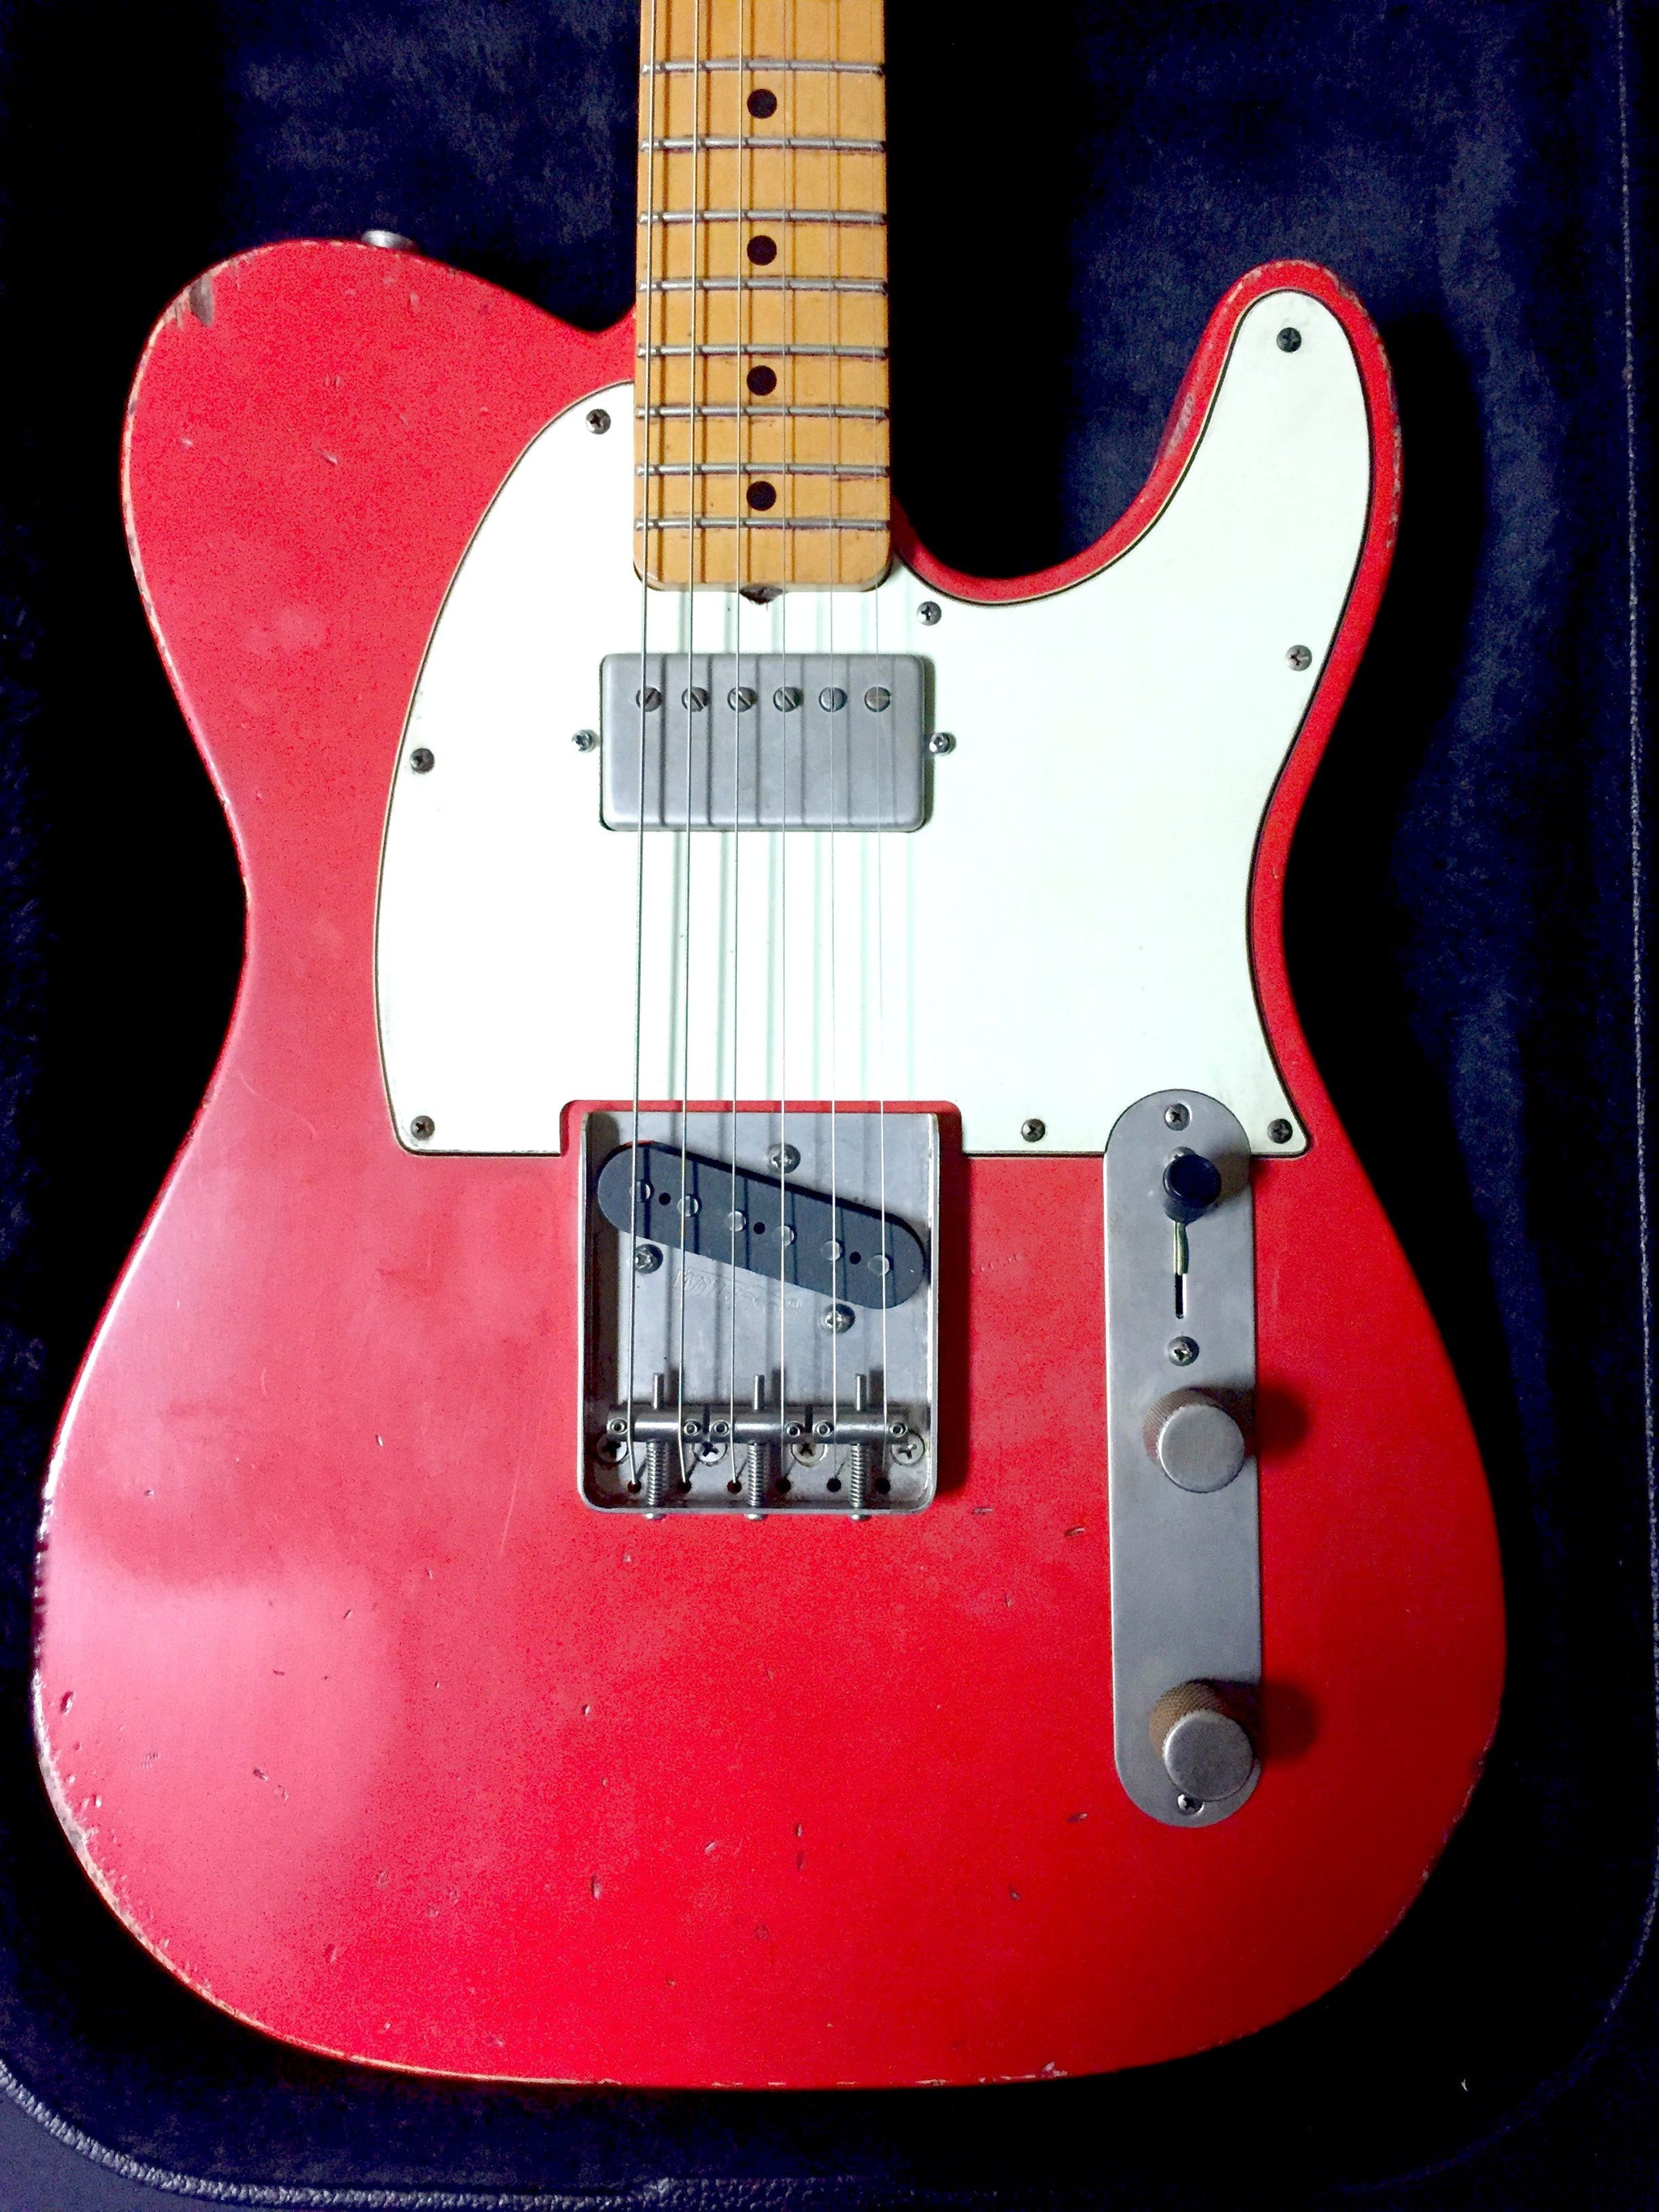 Jimmy Wallace Dazzling Hot Rod Red Telecaster